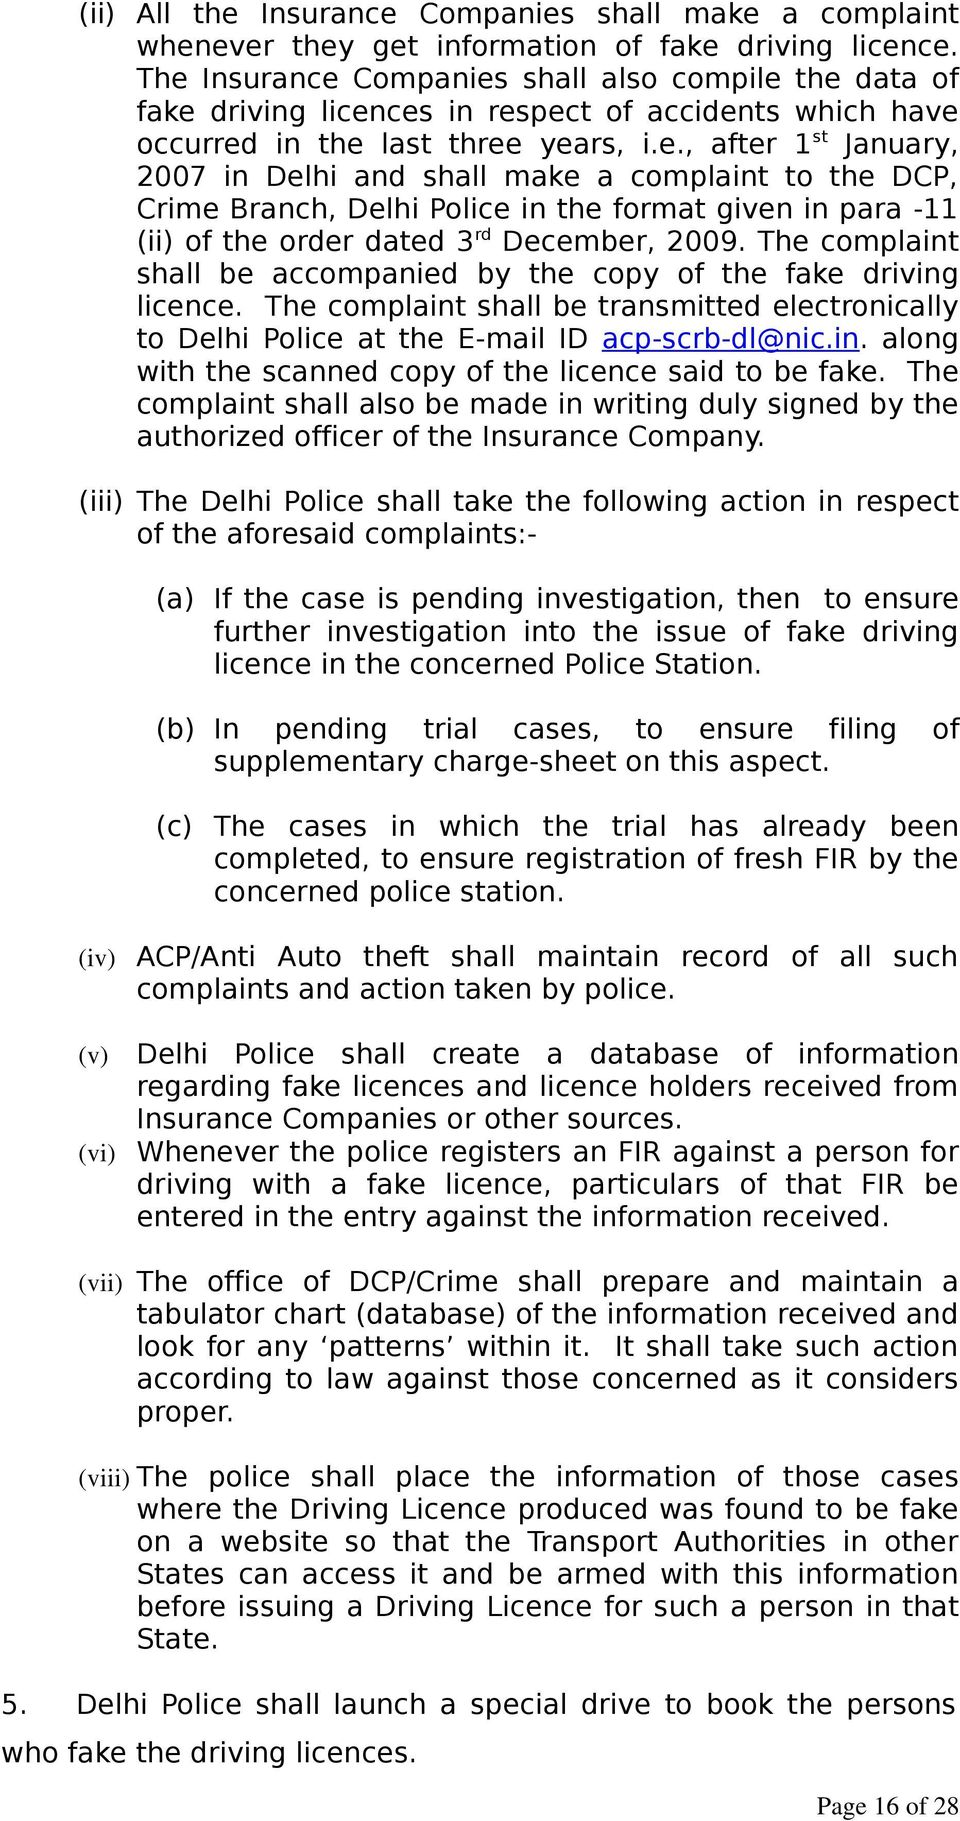 The complaint shall be accompanied by the copy of the fake driving licence. The complaint shall be transmitted electronically to Delhi Police at the E-mail ID acp-scrb-dl@nic.in. along with the scanned copy of the licence said to be fake.